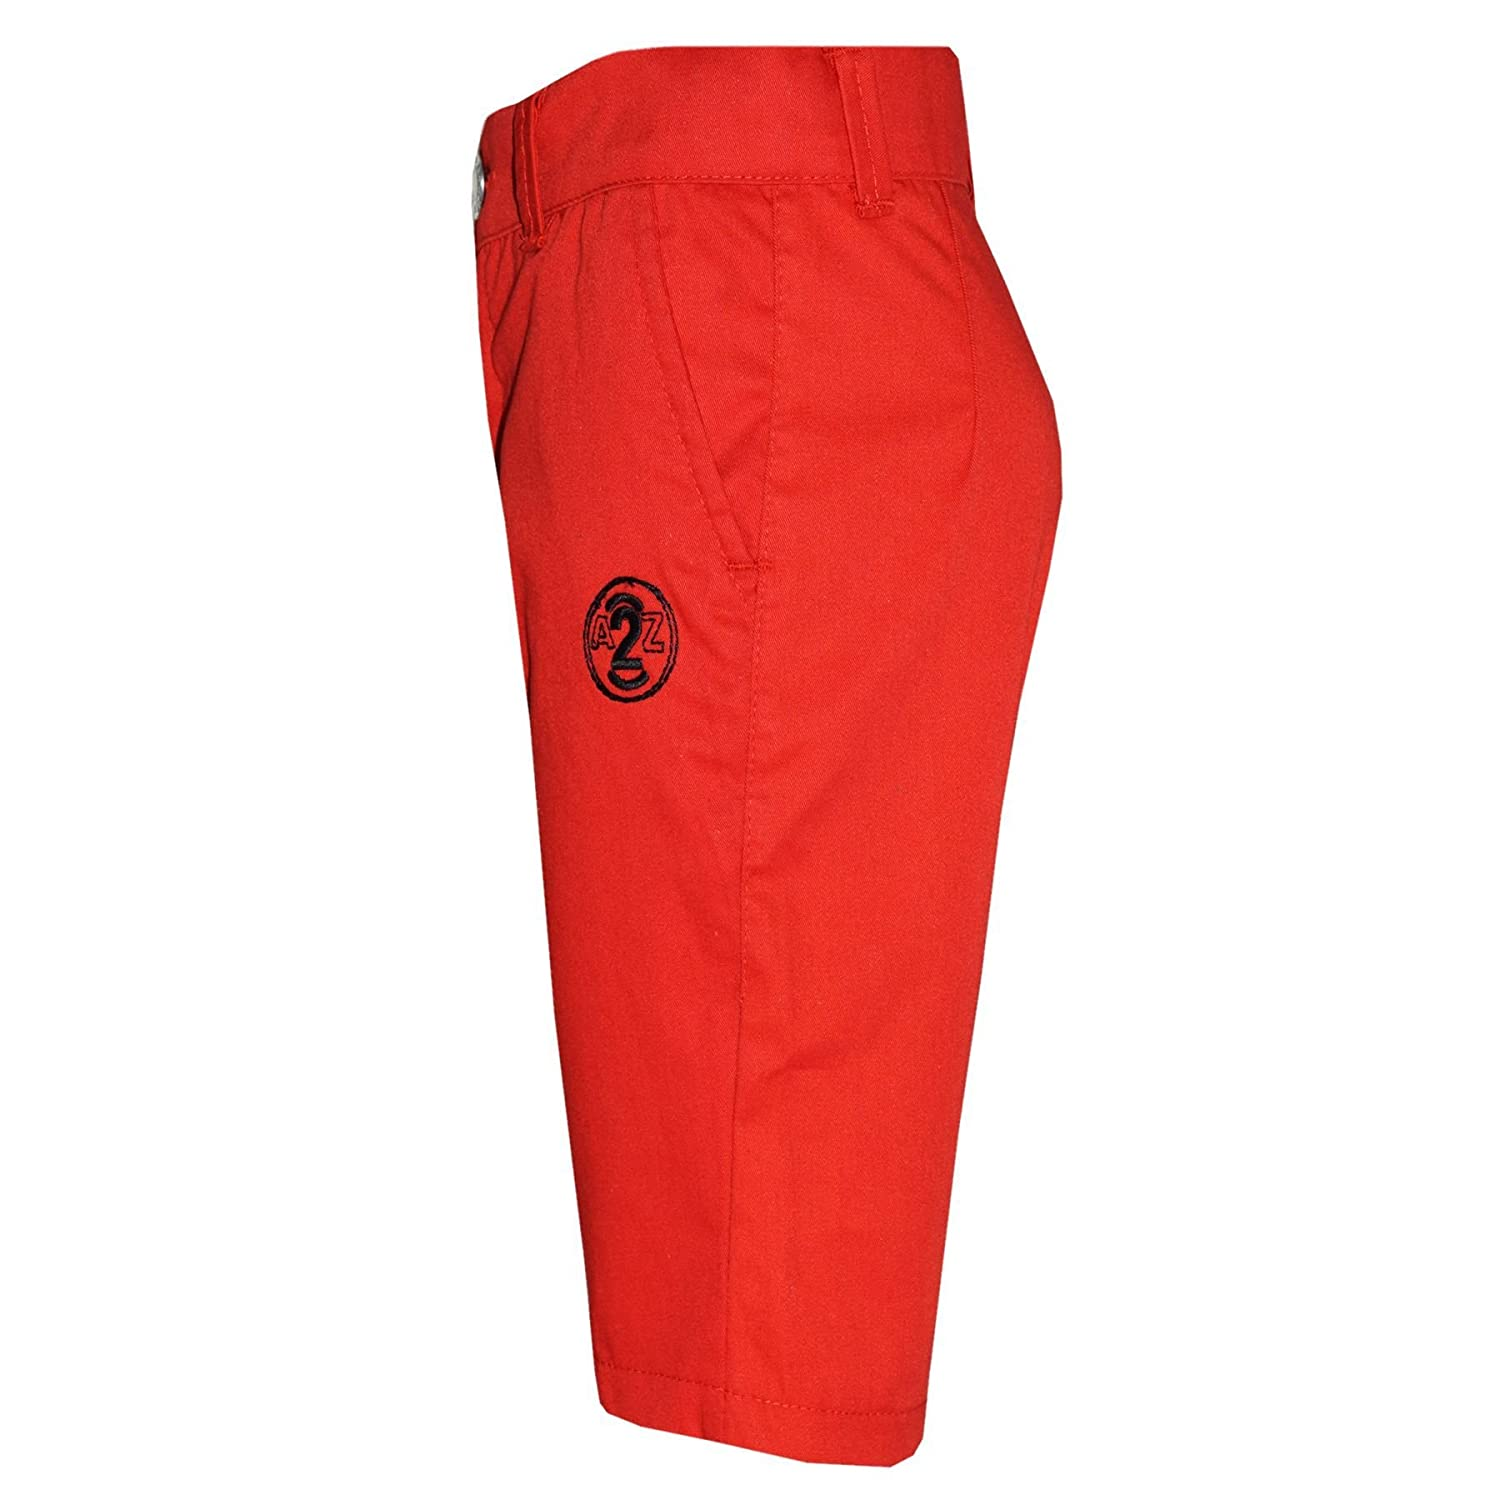 A2Z 4 Kids/® Boys Summer Shorts Kids Cotton Red Chino Shorts Knee Length Half Pant New Age 2 3 4 5 6 7 8 9 10 11 12 13 Years